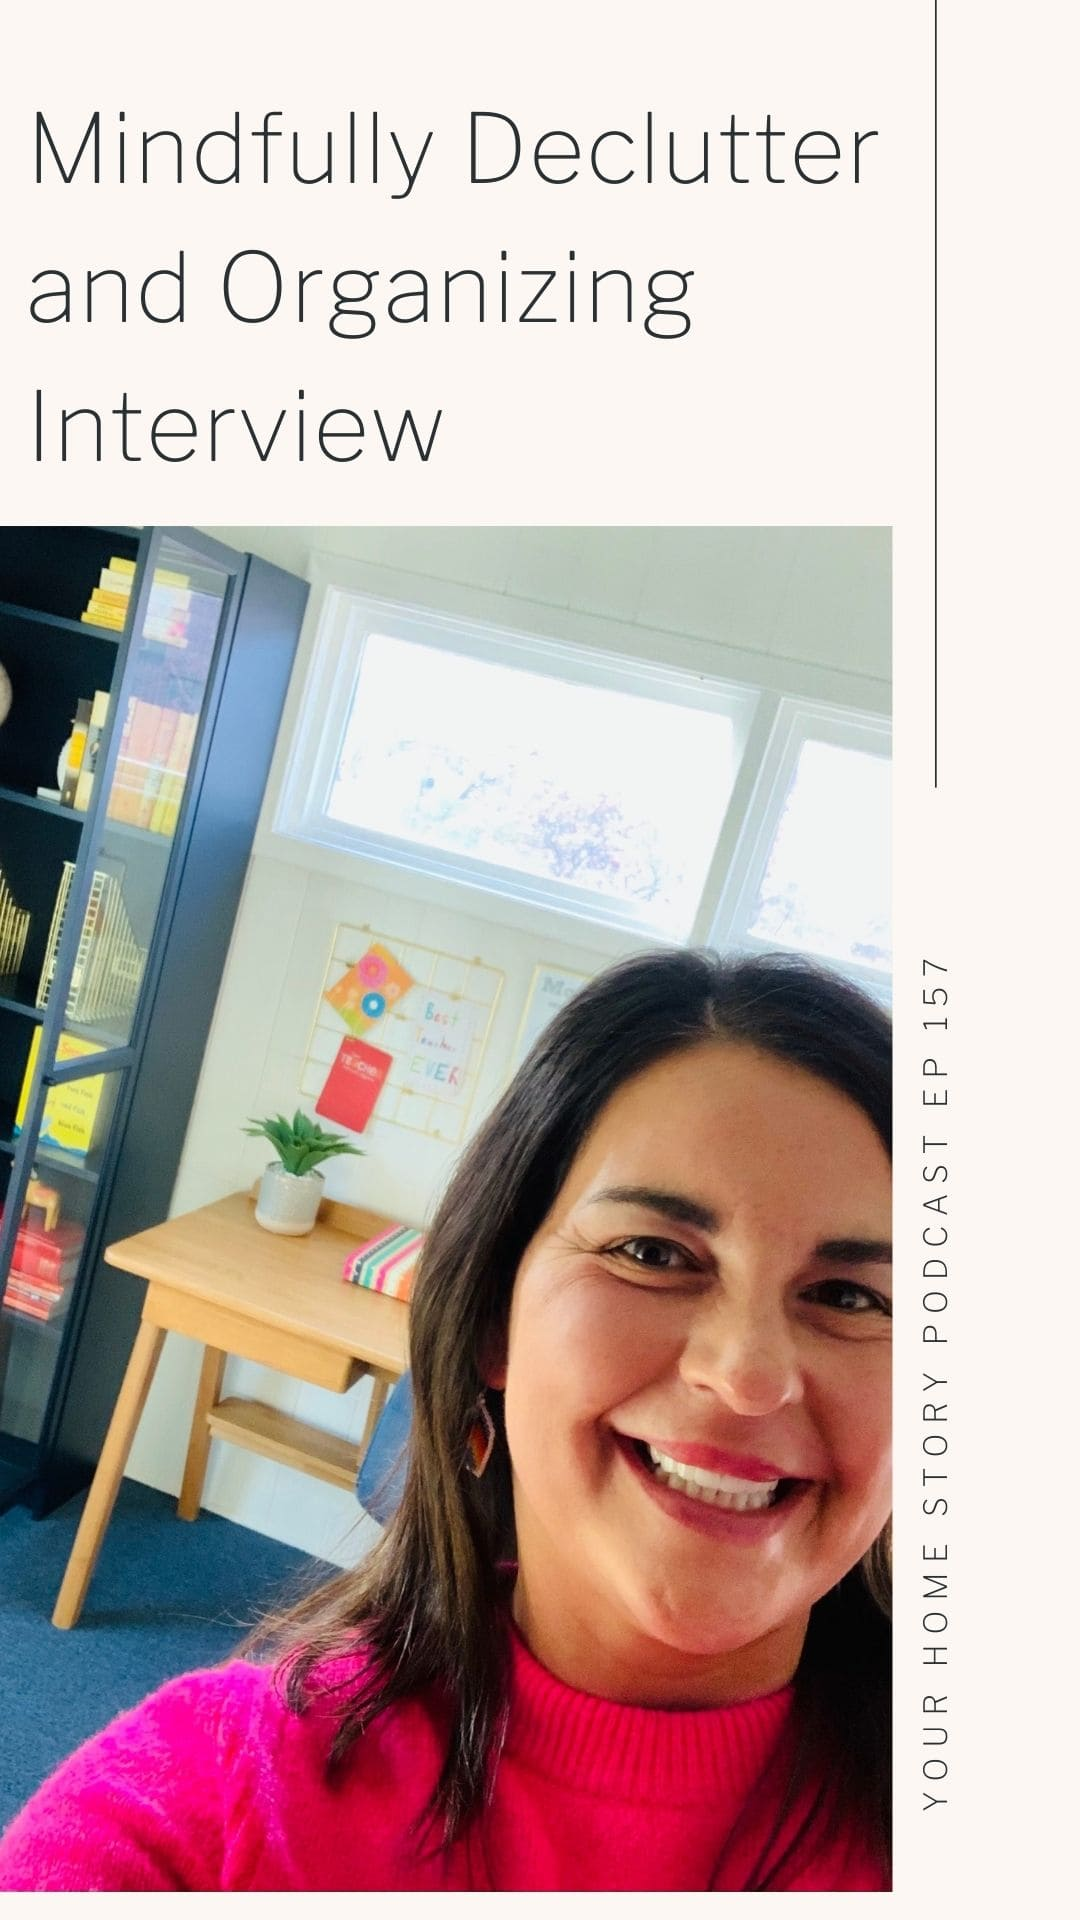 Mindfully Declutter and Organizing Interview